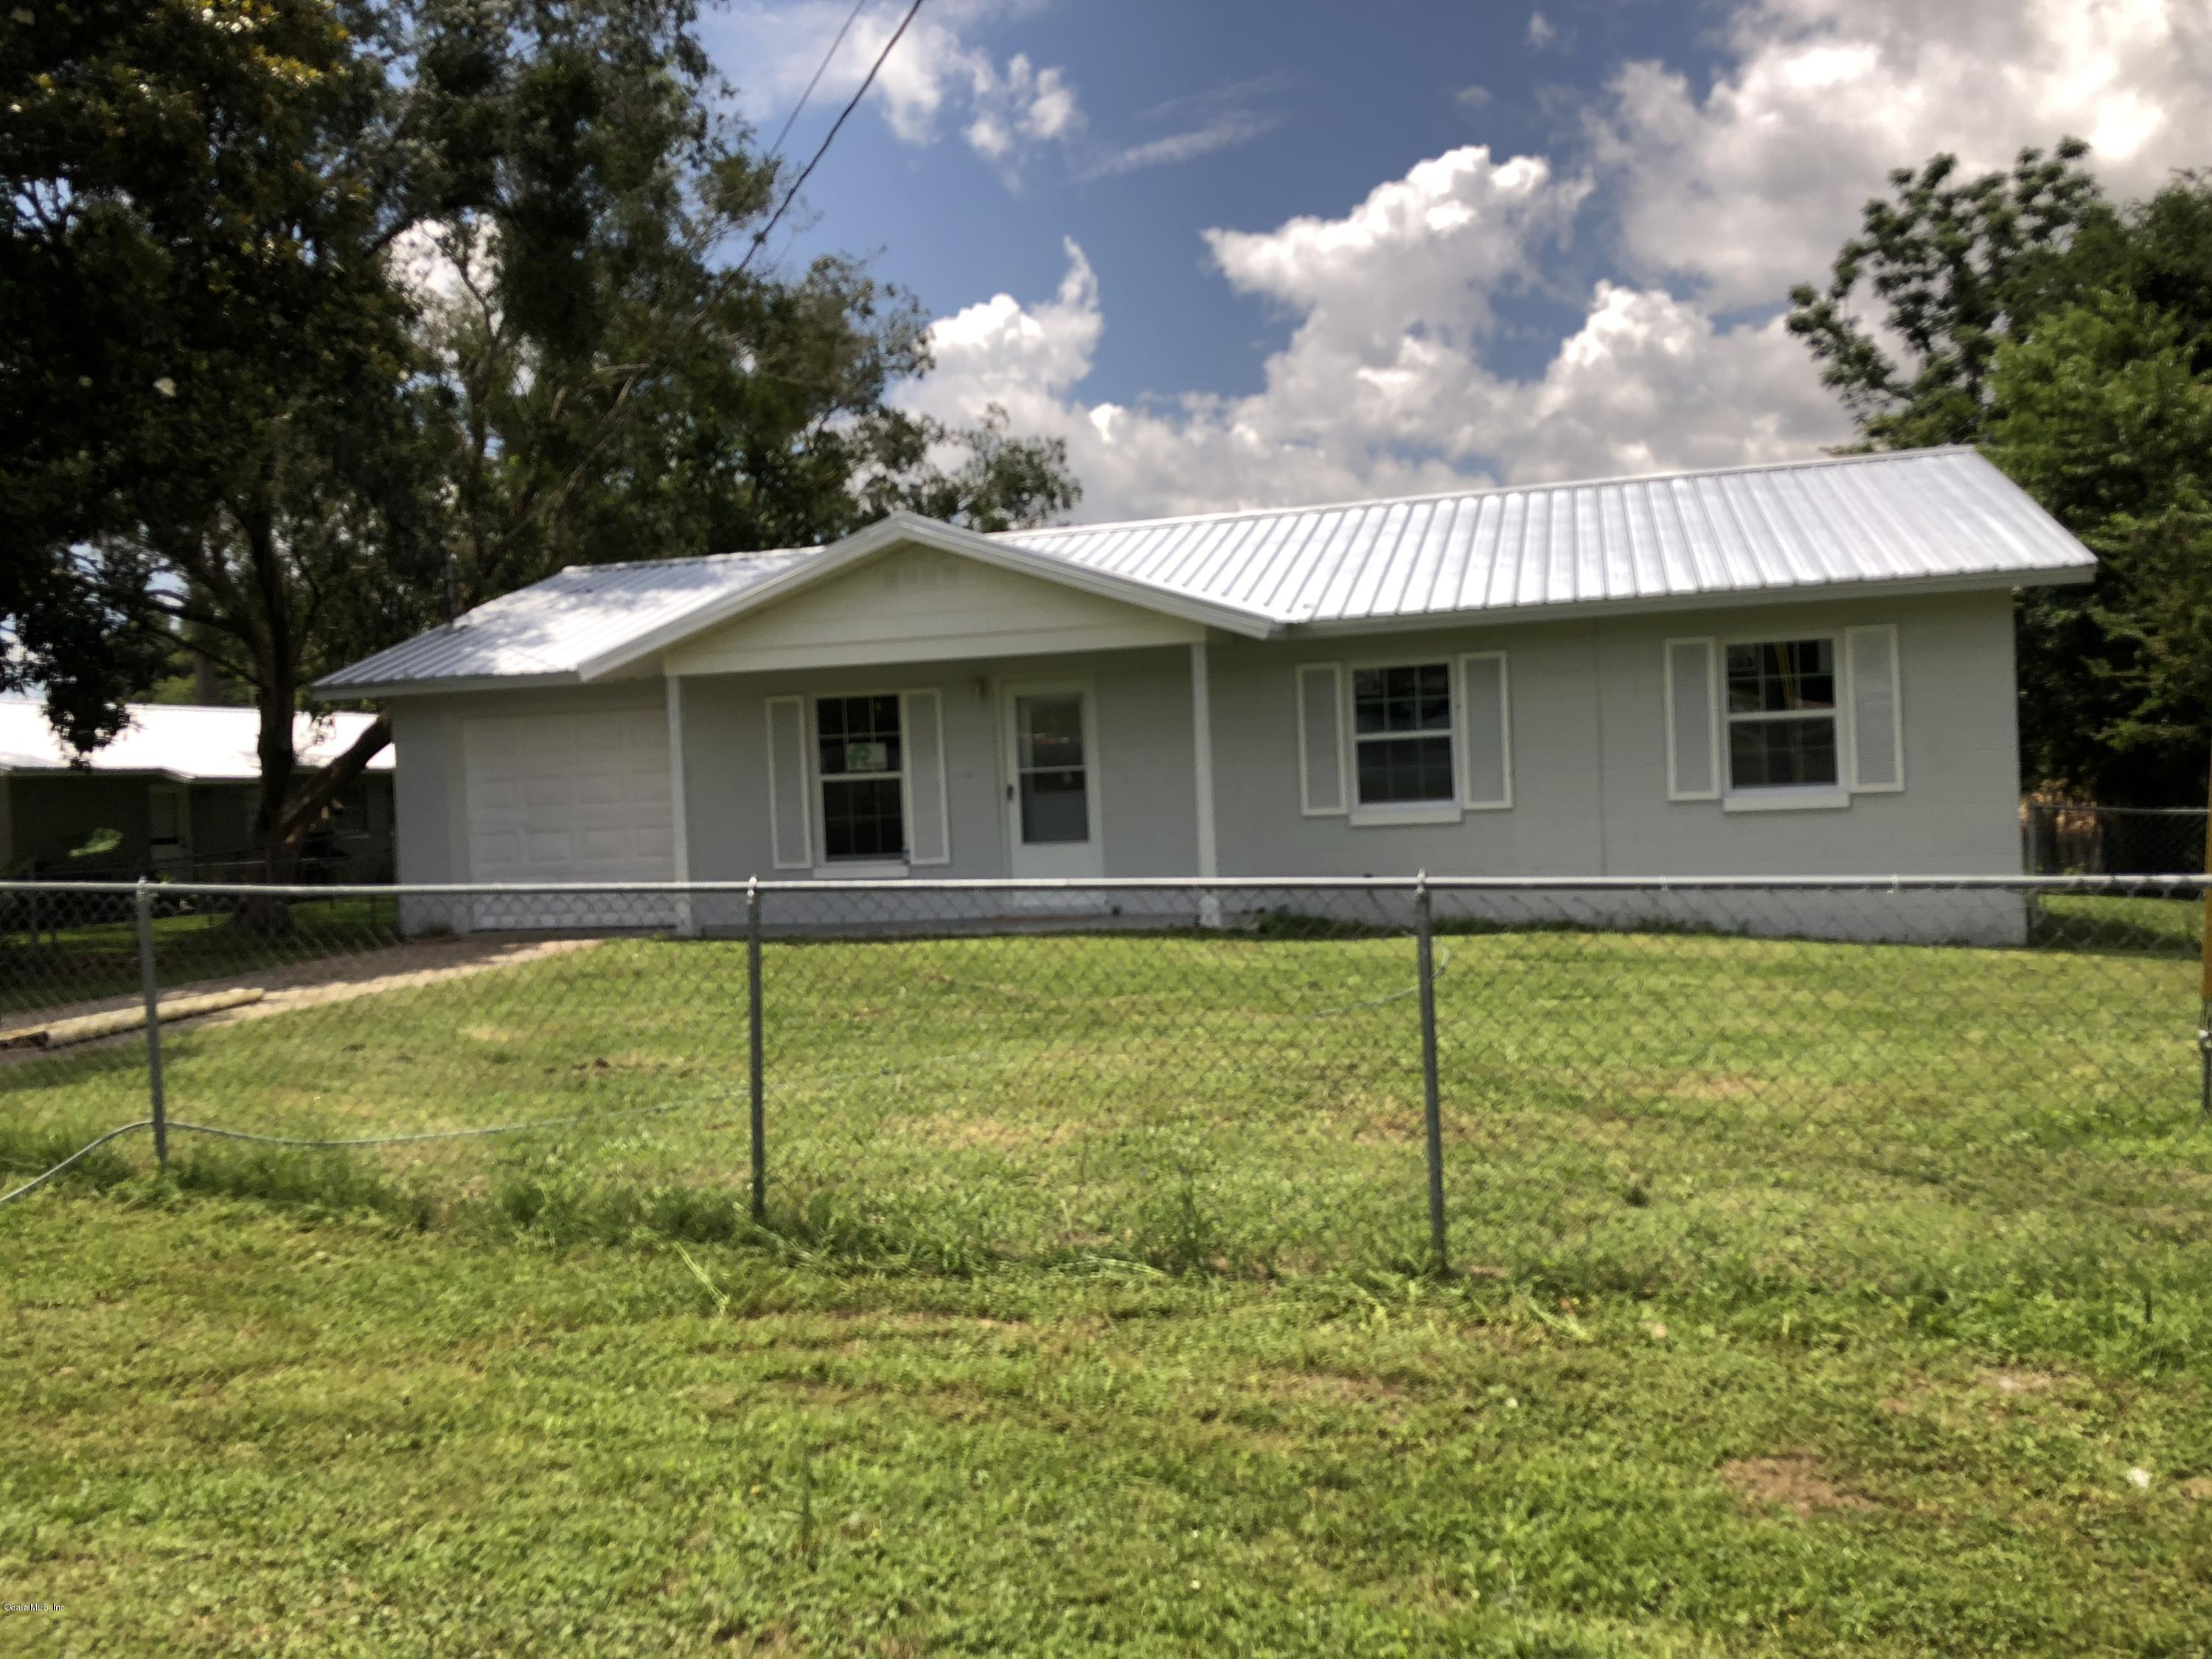 3930 SE COUNTY HIGHWAY 484, BELLEVIEW, FL 34420